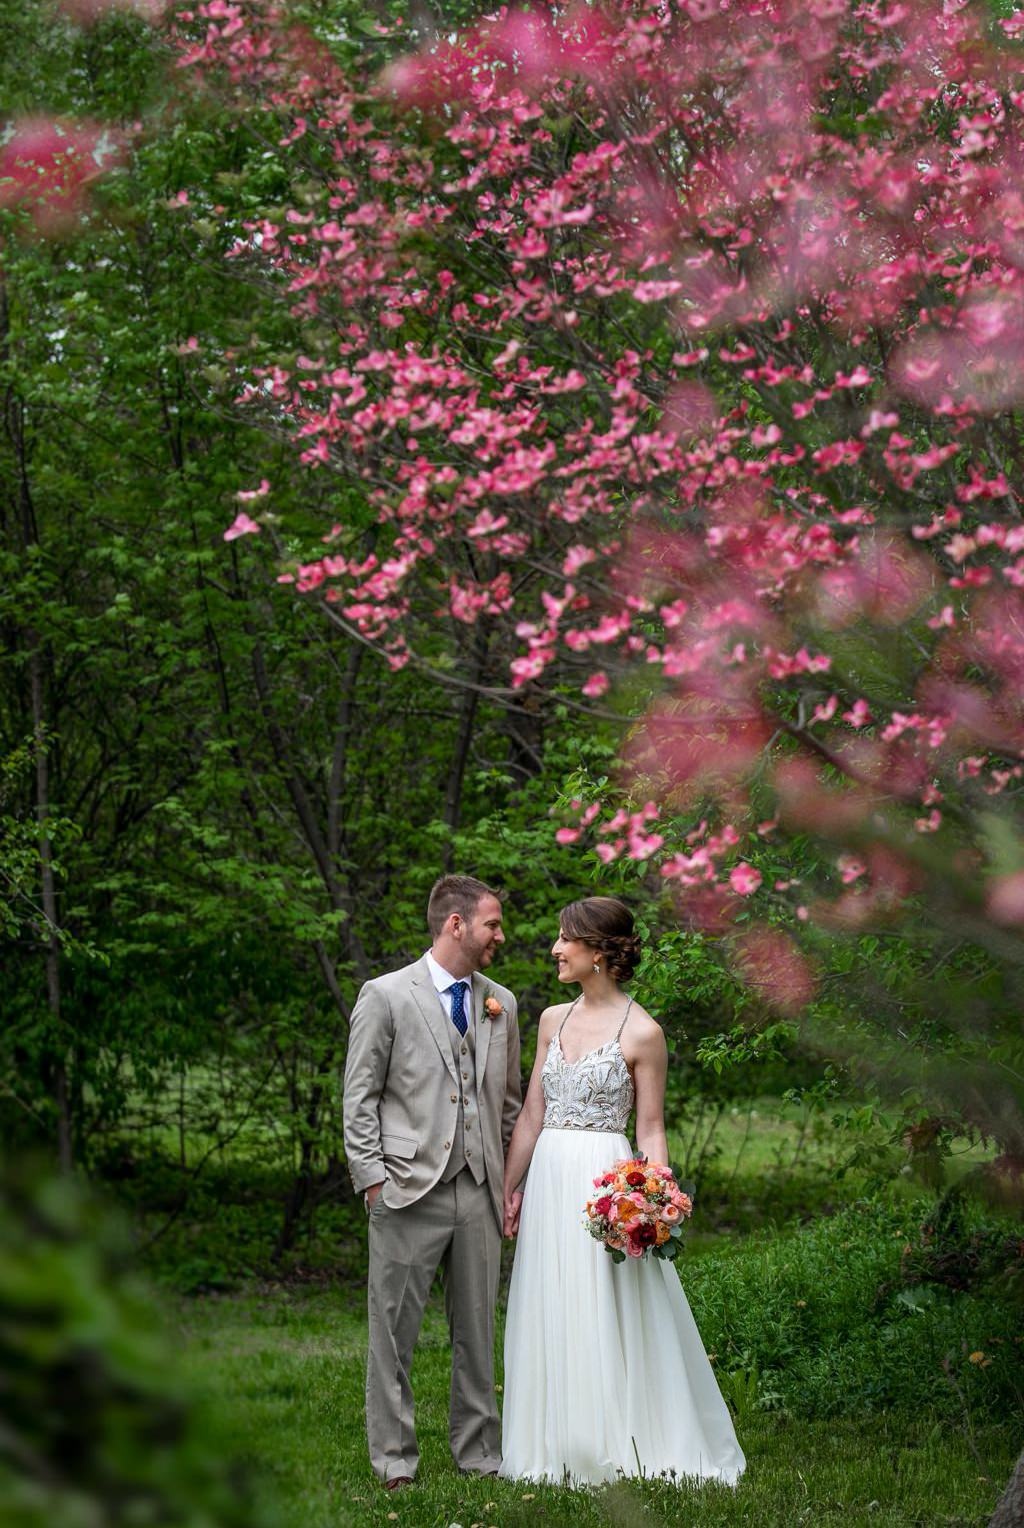 A bride and groom posing in front of a tree with pink blossoms on their wedding day, at The Barn at Silverstone in Lancaster, PA